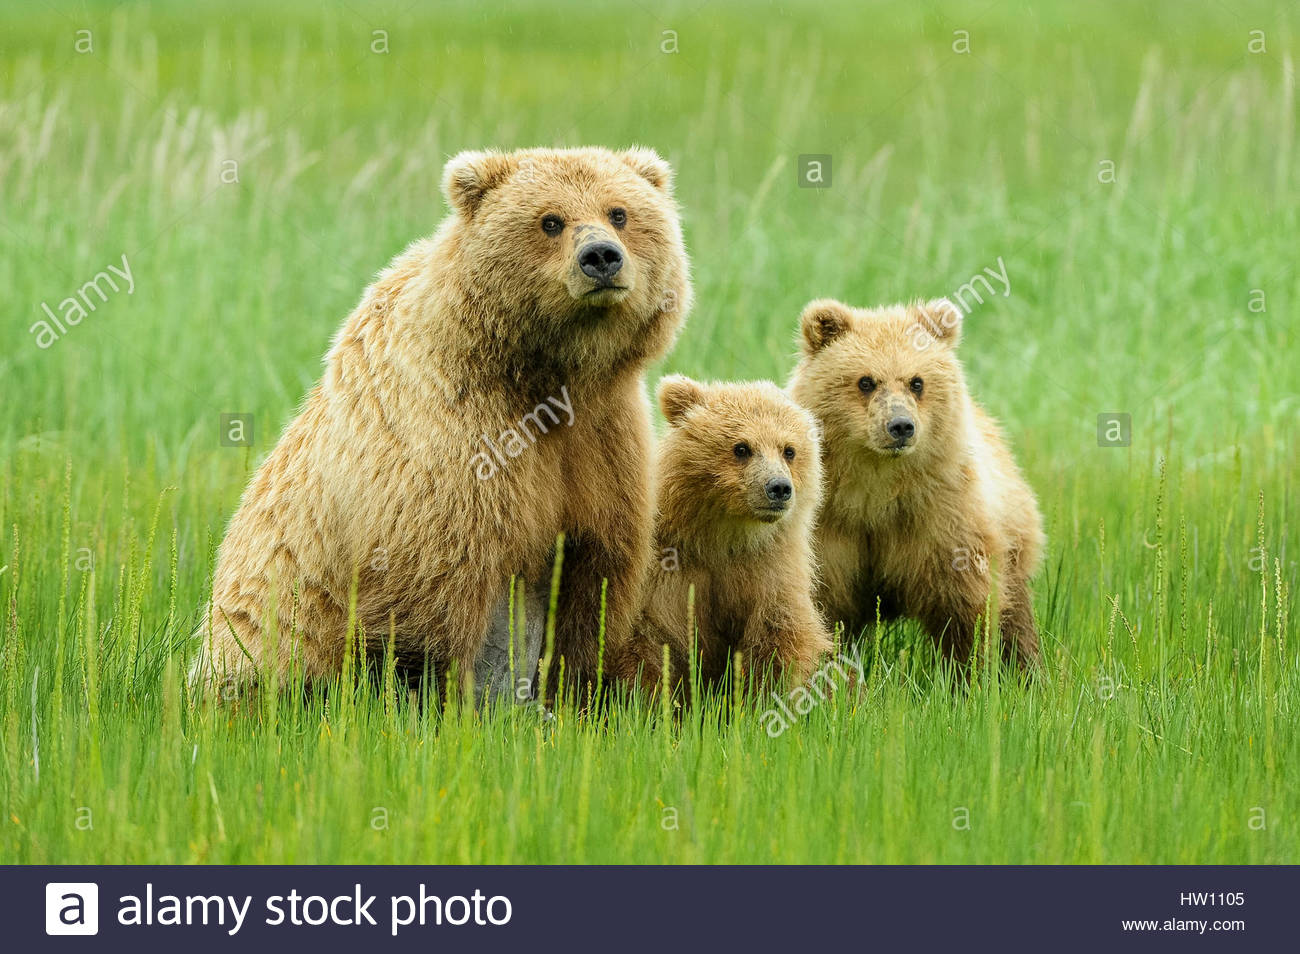 A grizzly bear family sits closely together. - Stock Image